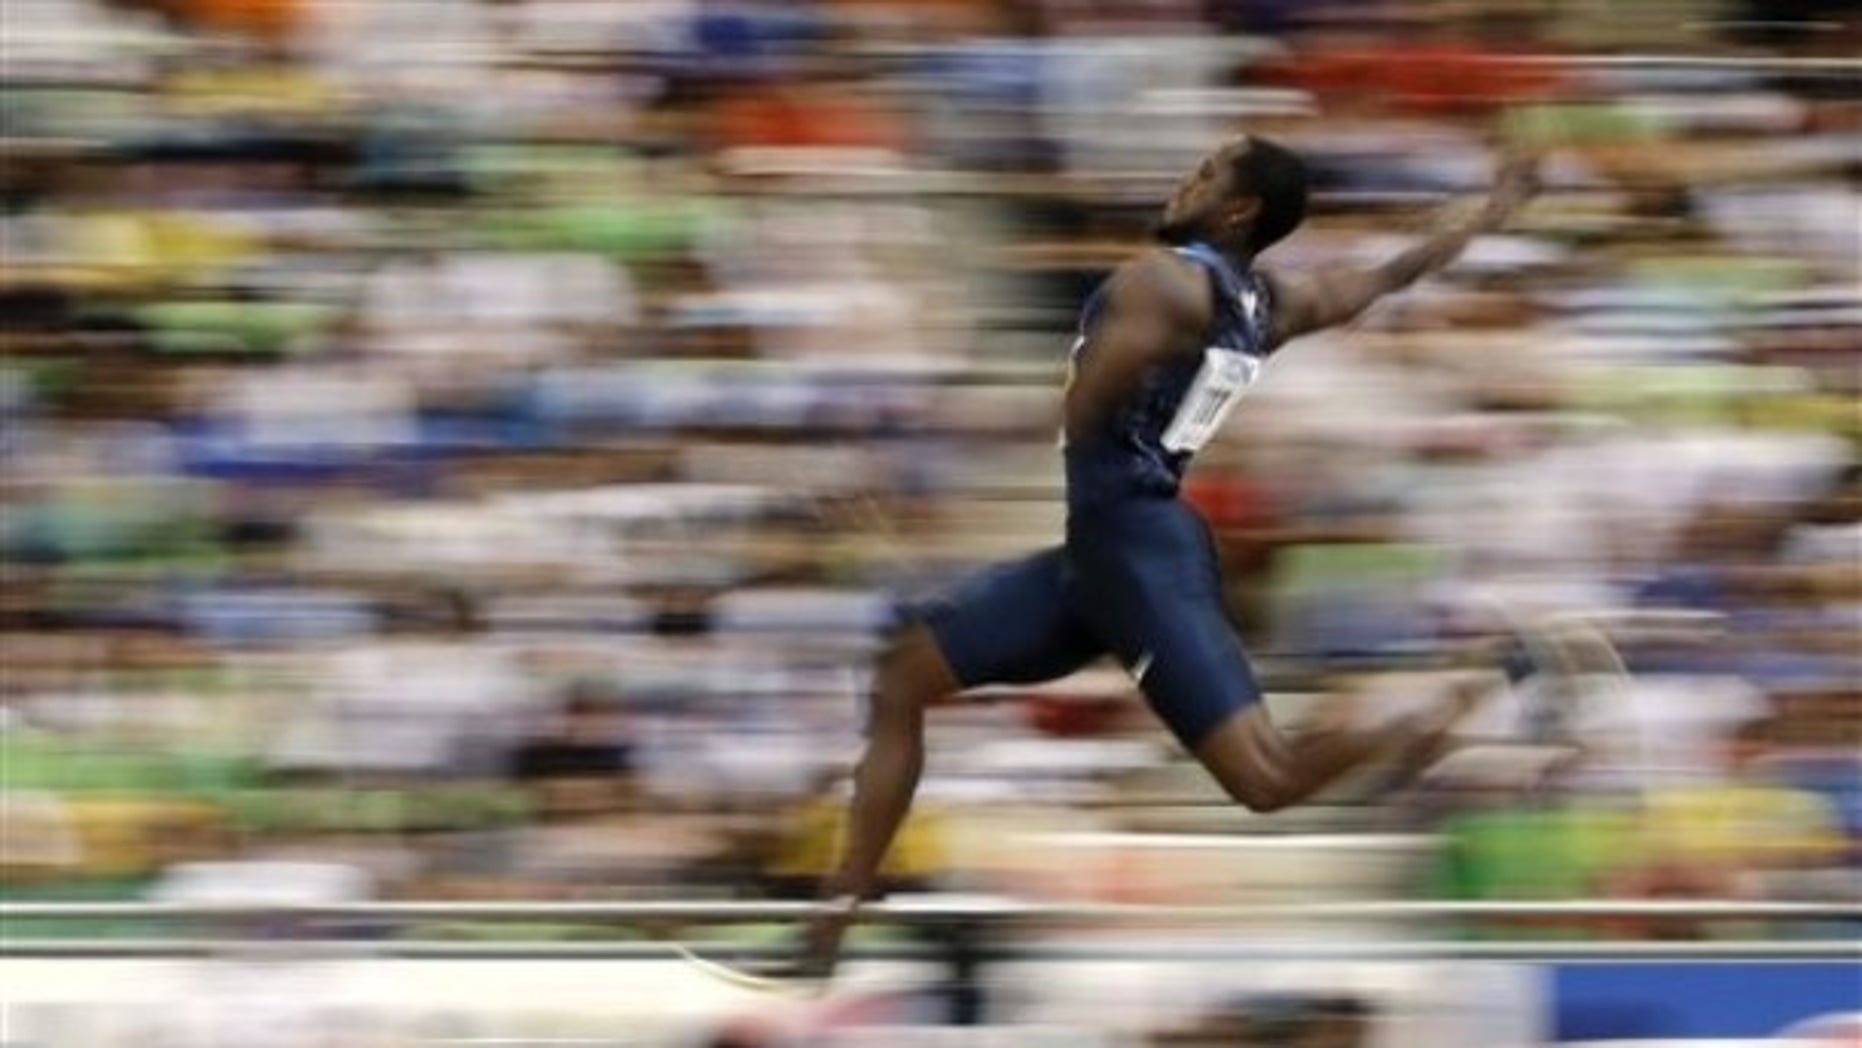 USA's Dwight Phillips competes in a Men's Long Jump qualification round at the World Athletics Championships in Daegu, South Korea, Thursday, Sept. 1, 2011. (AP Photo/David J. Phillip)